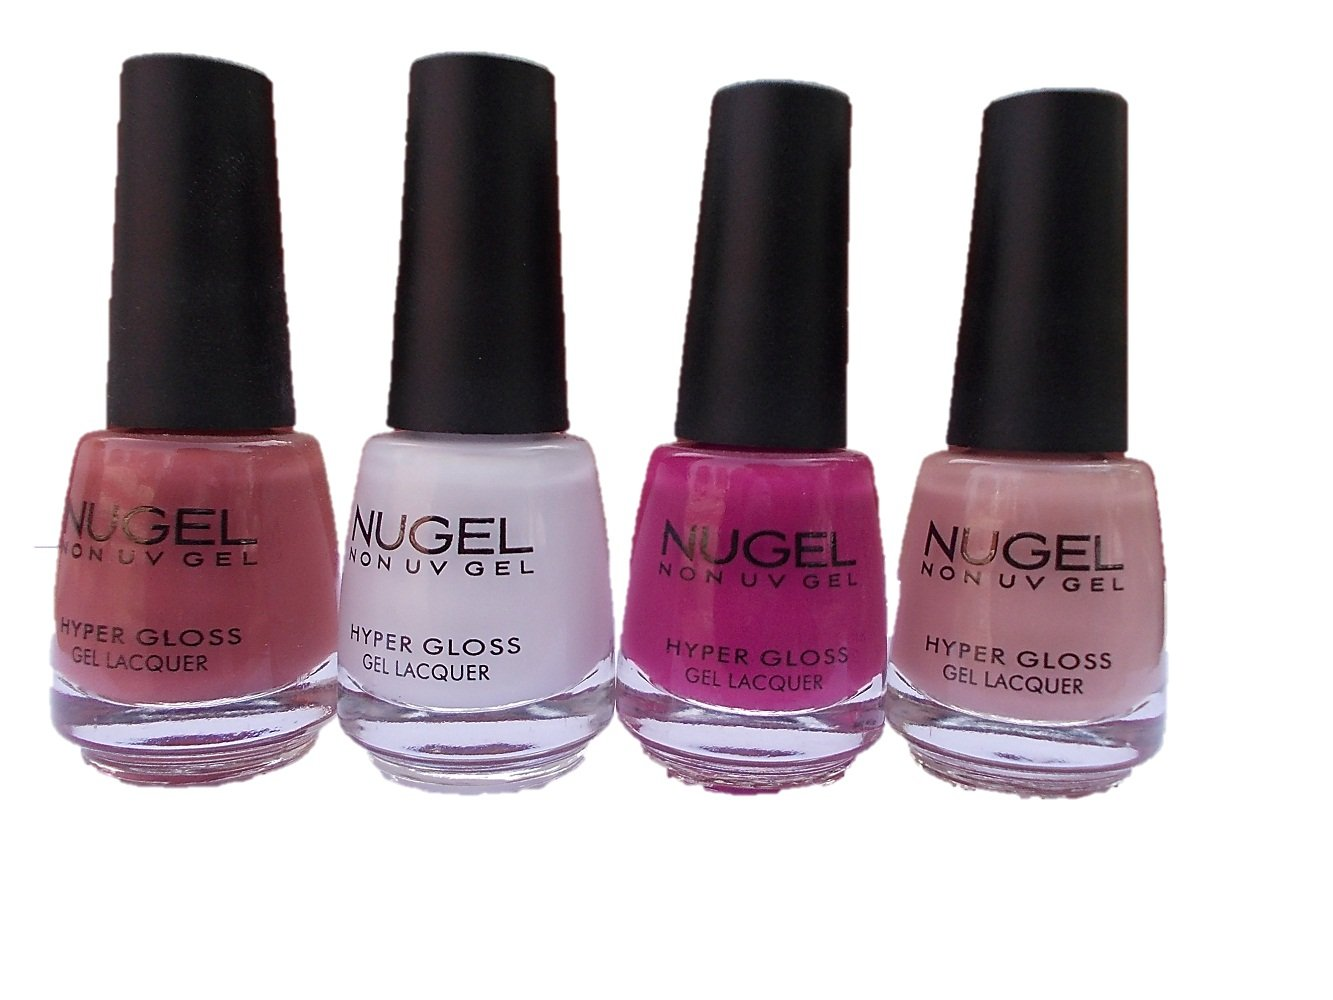 Buy NUGEL GEL NAIL POLISH (SET OF FOUR) Online at Low Prices in ...